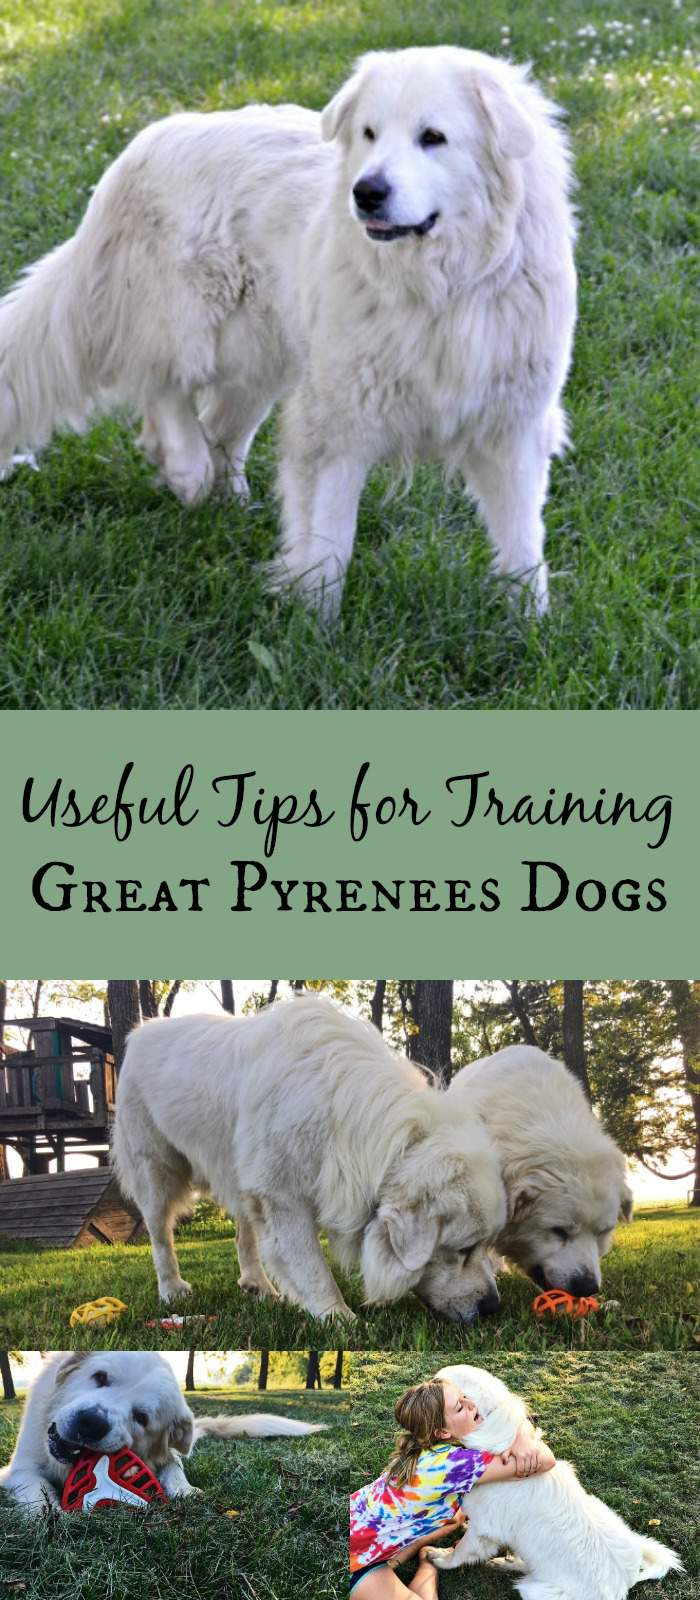 Useful Tips for Training Great Pyrenees Dogs pin